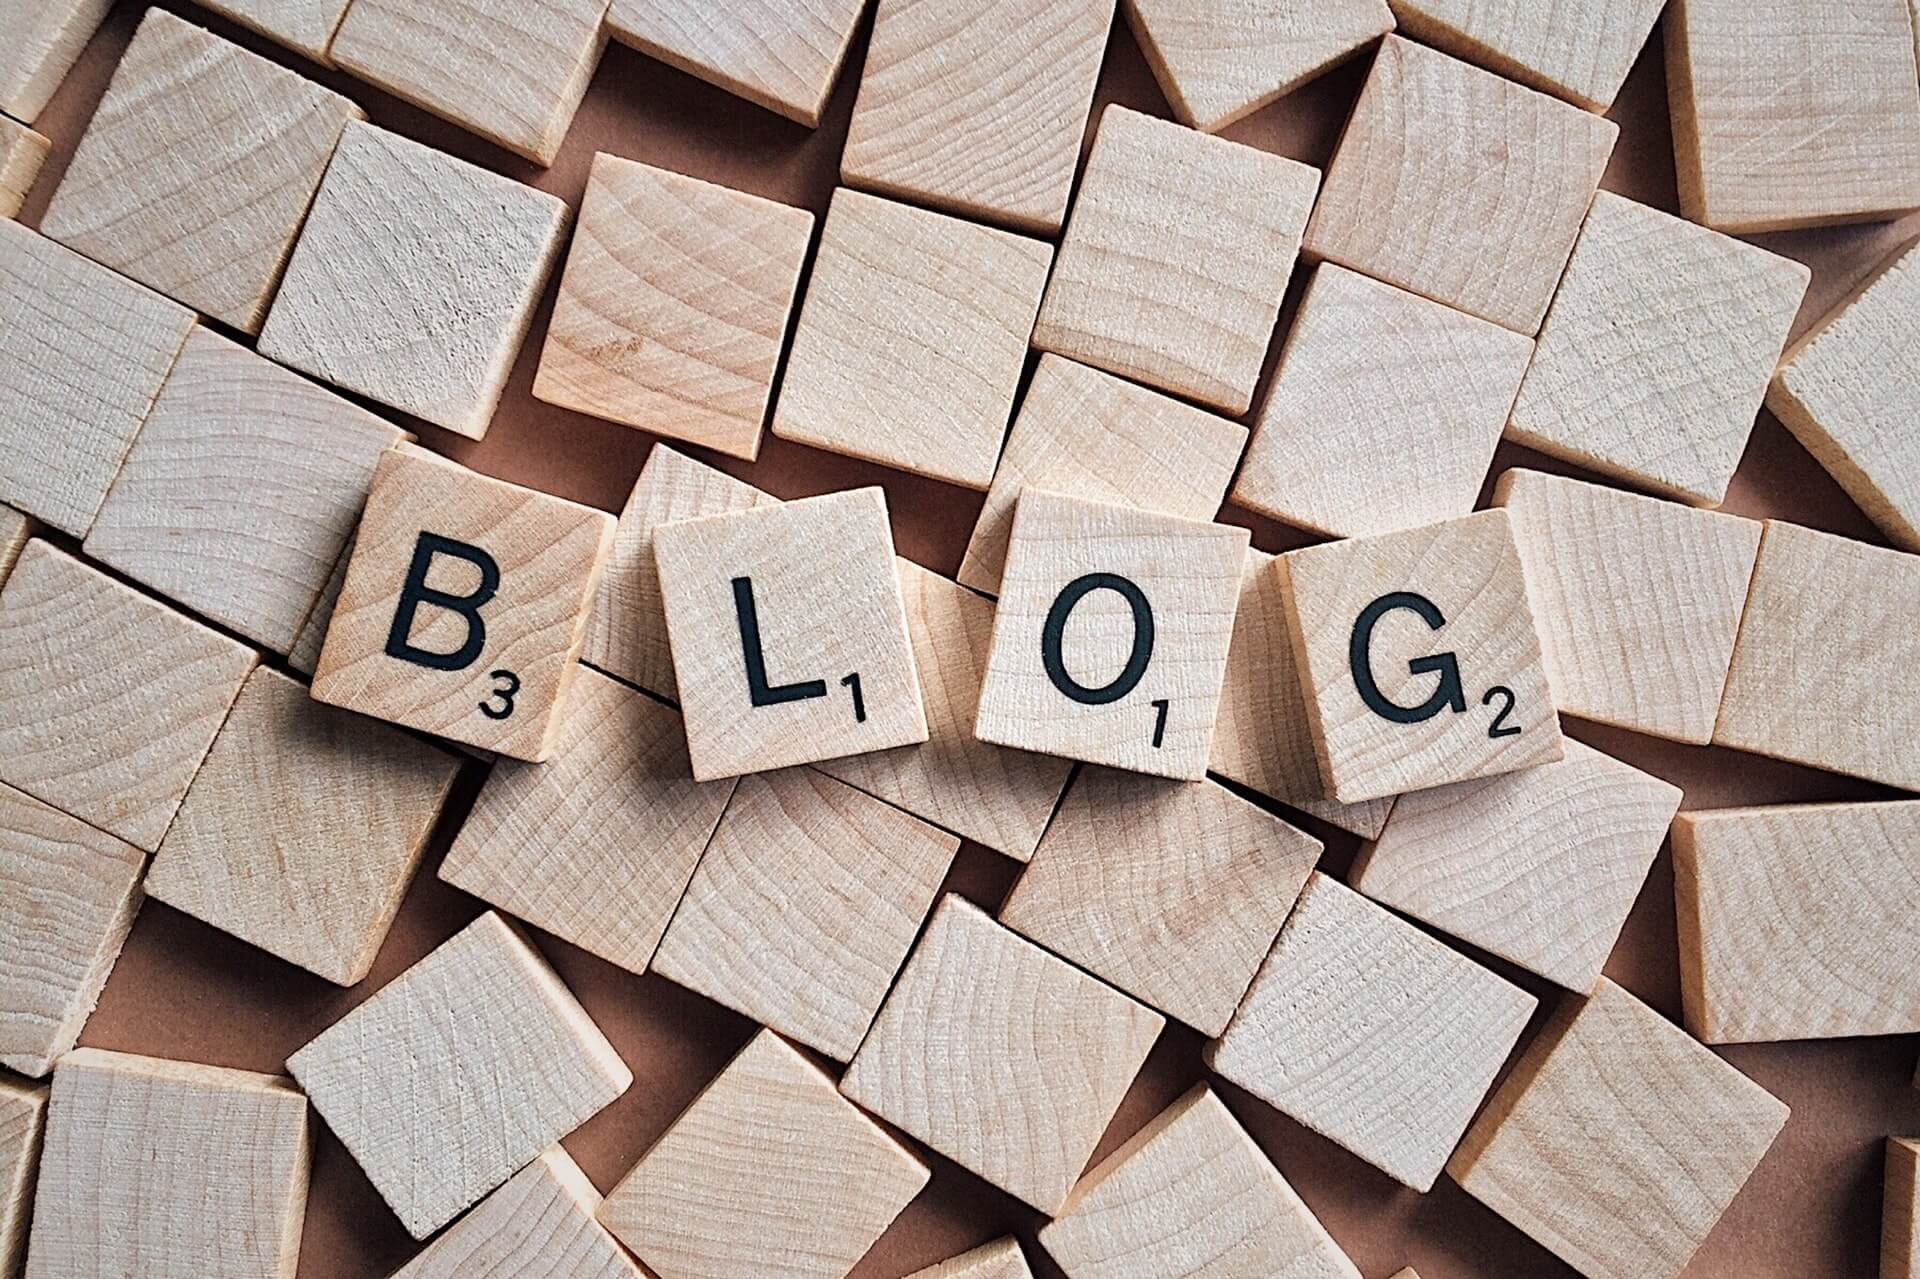 Differences Between Blogs and Discussion Forums